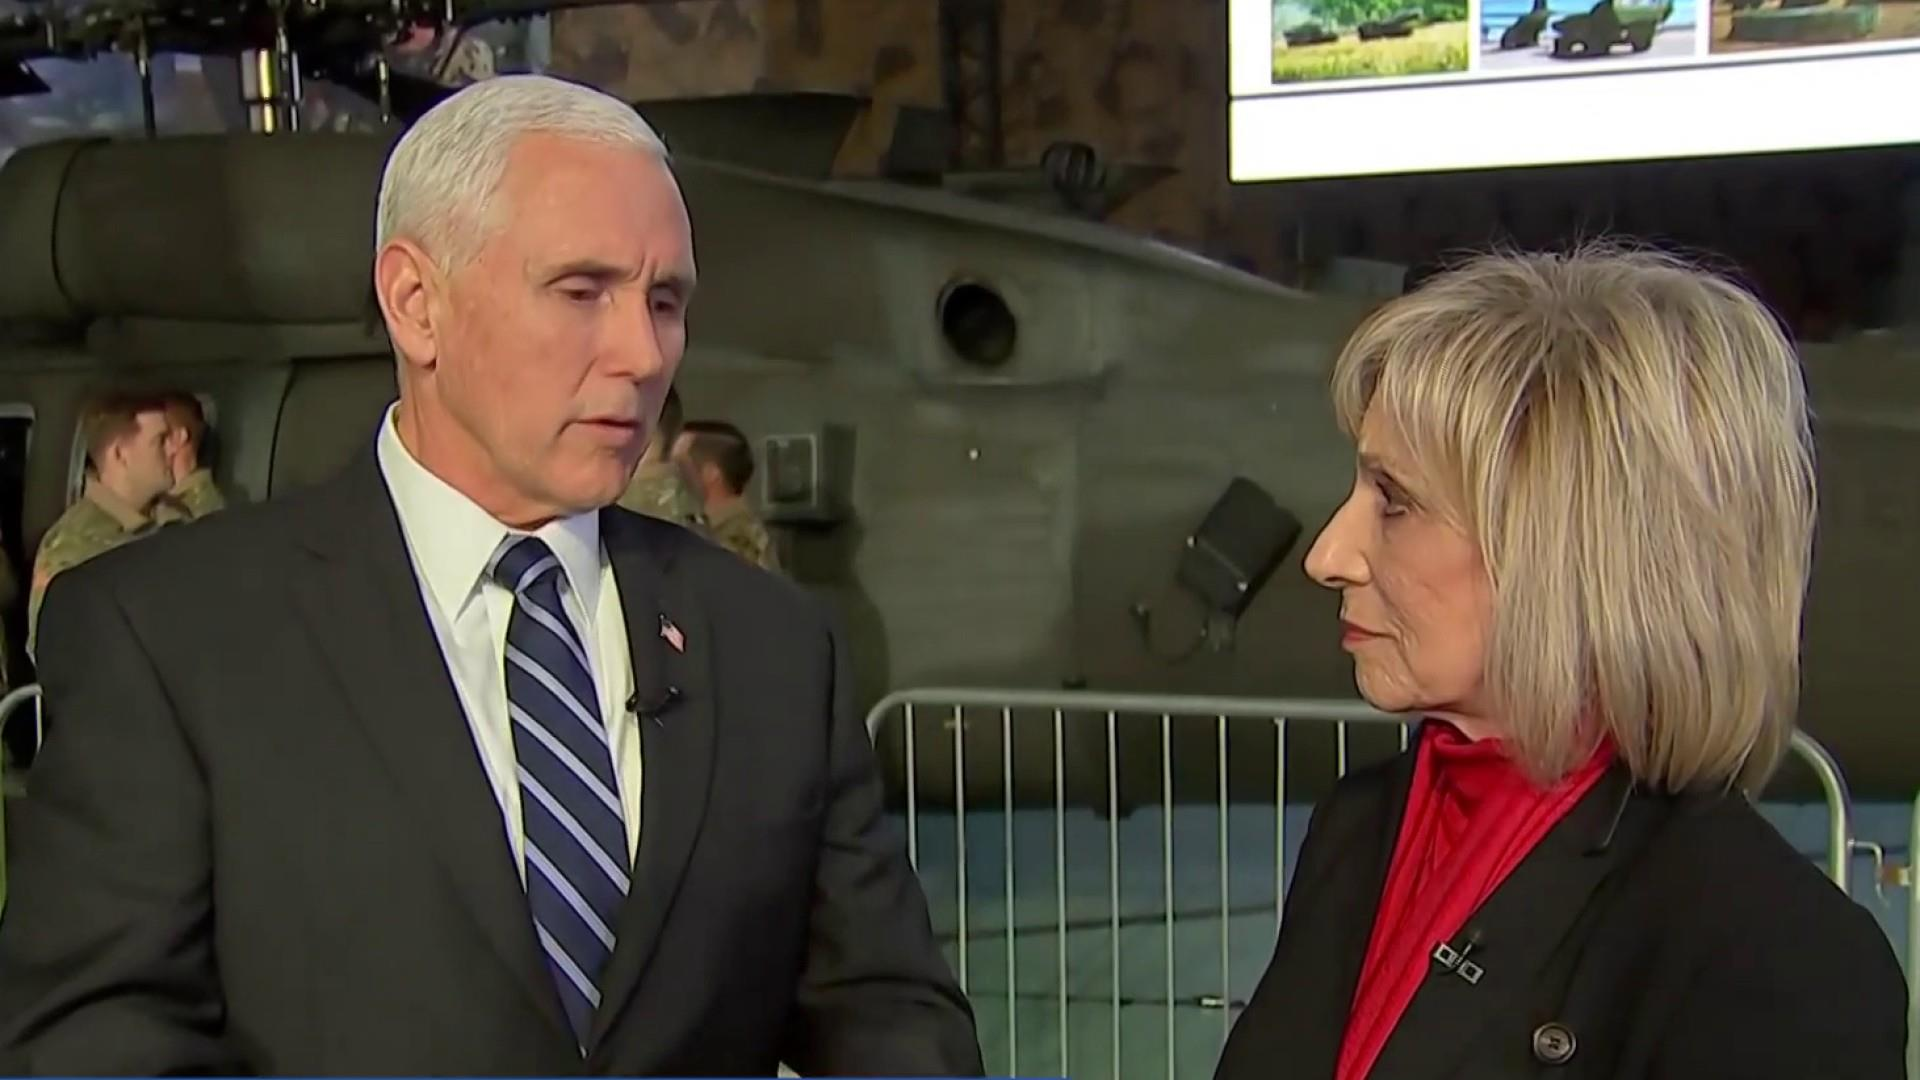 Andrea's conversation with VP Pence on key domestic and foreign policy concerns